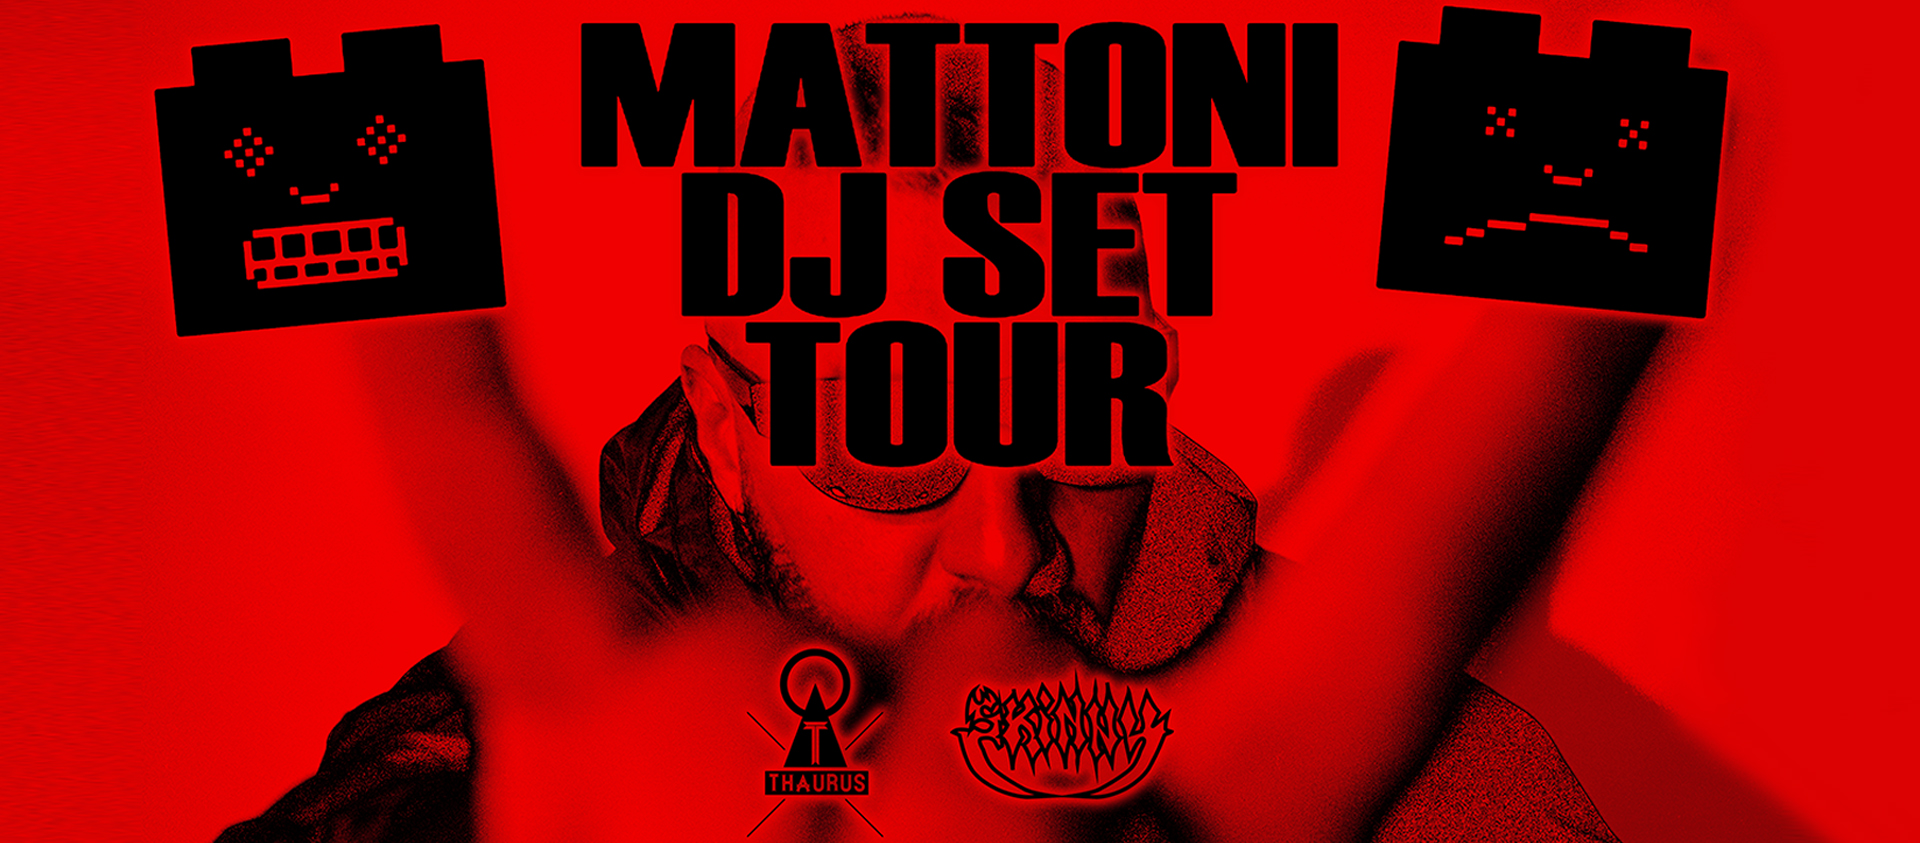 THE NIGHT SKINNY - MATTONI DJ SET TOUR